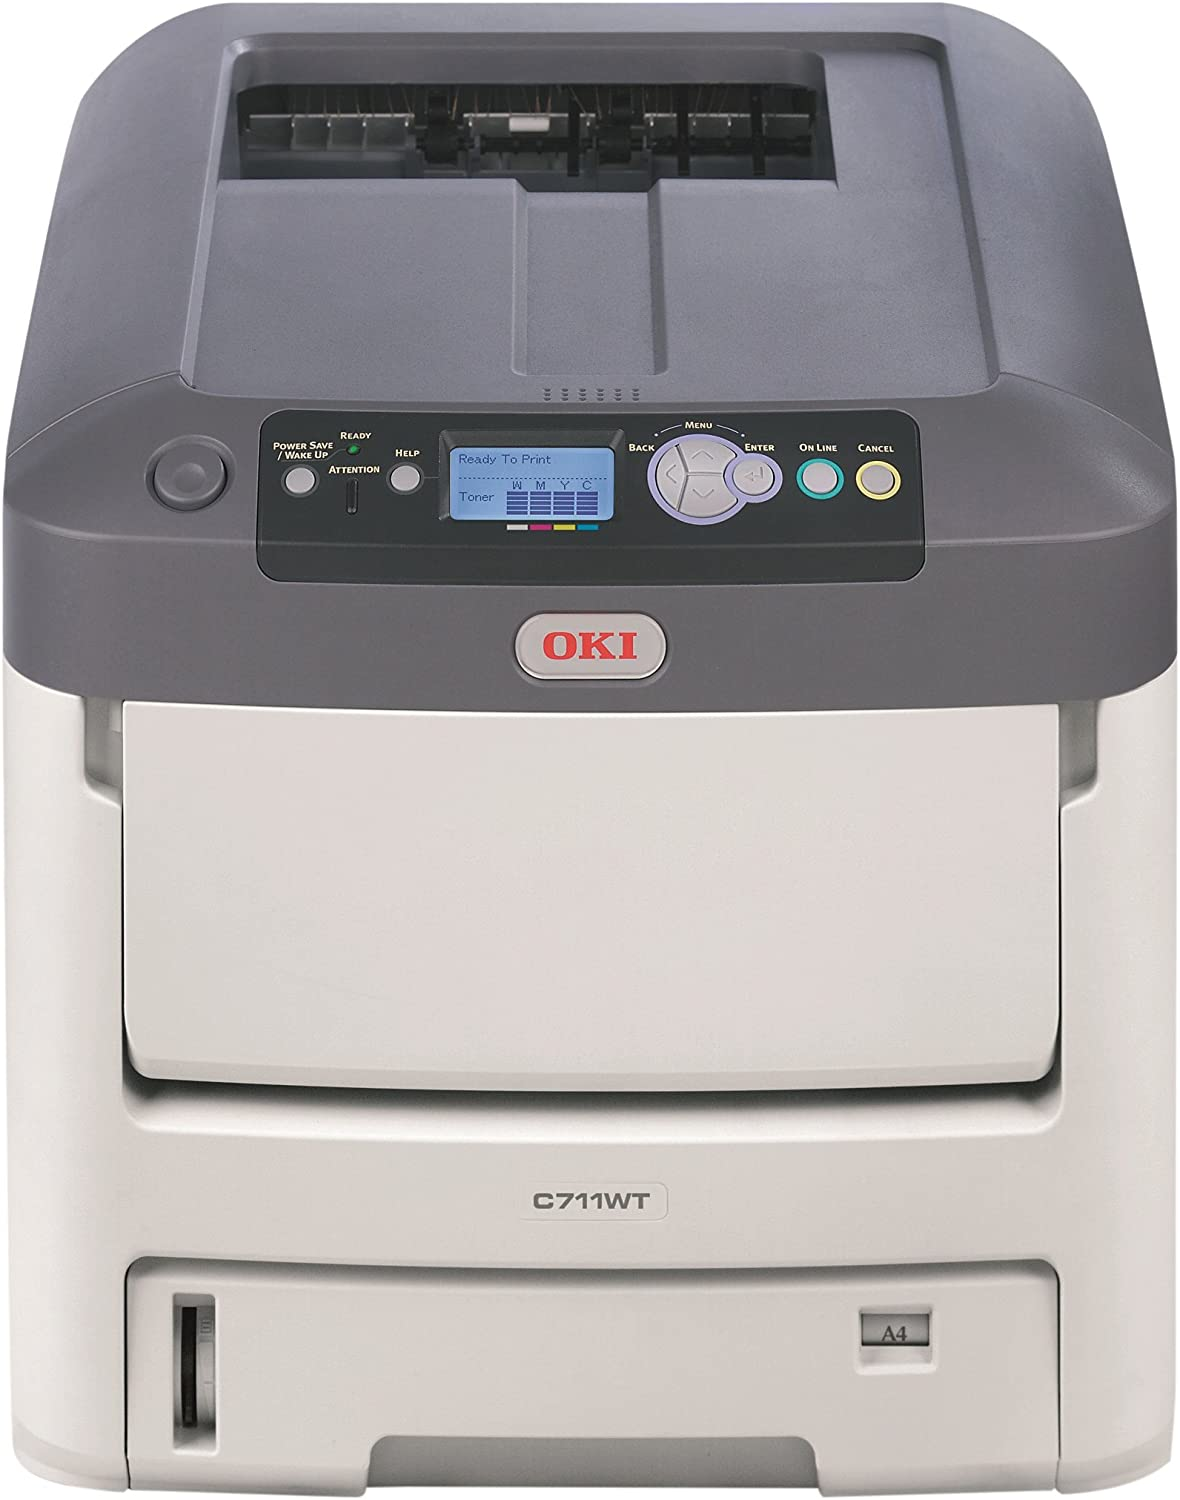 Amazon.com: OKI C711WT Imprimante laser Couleur: Computers ...